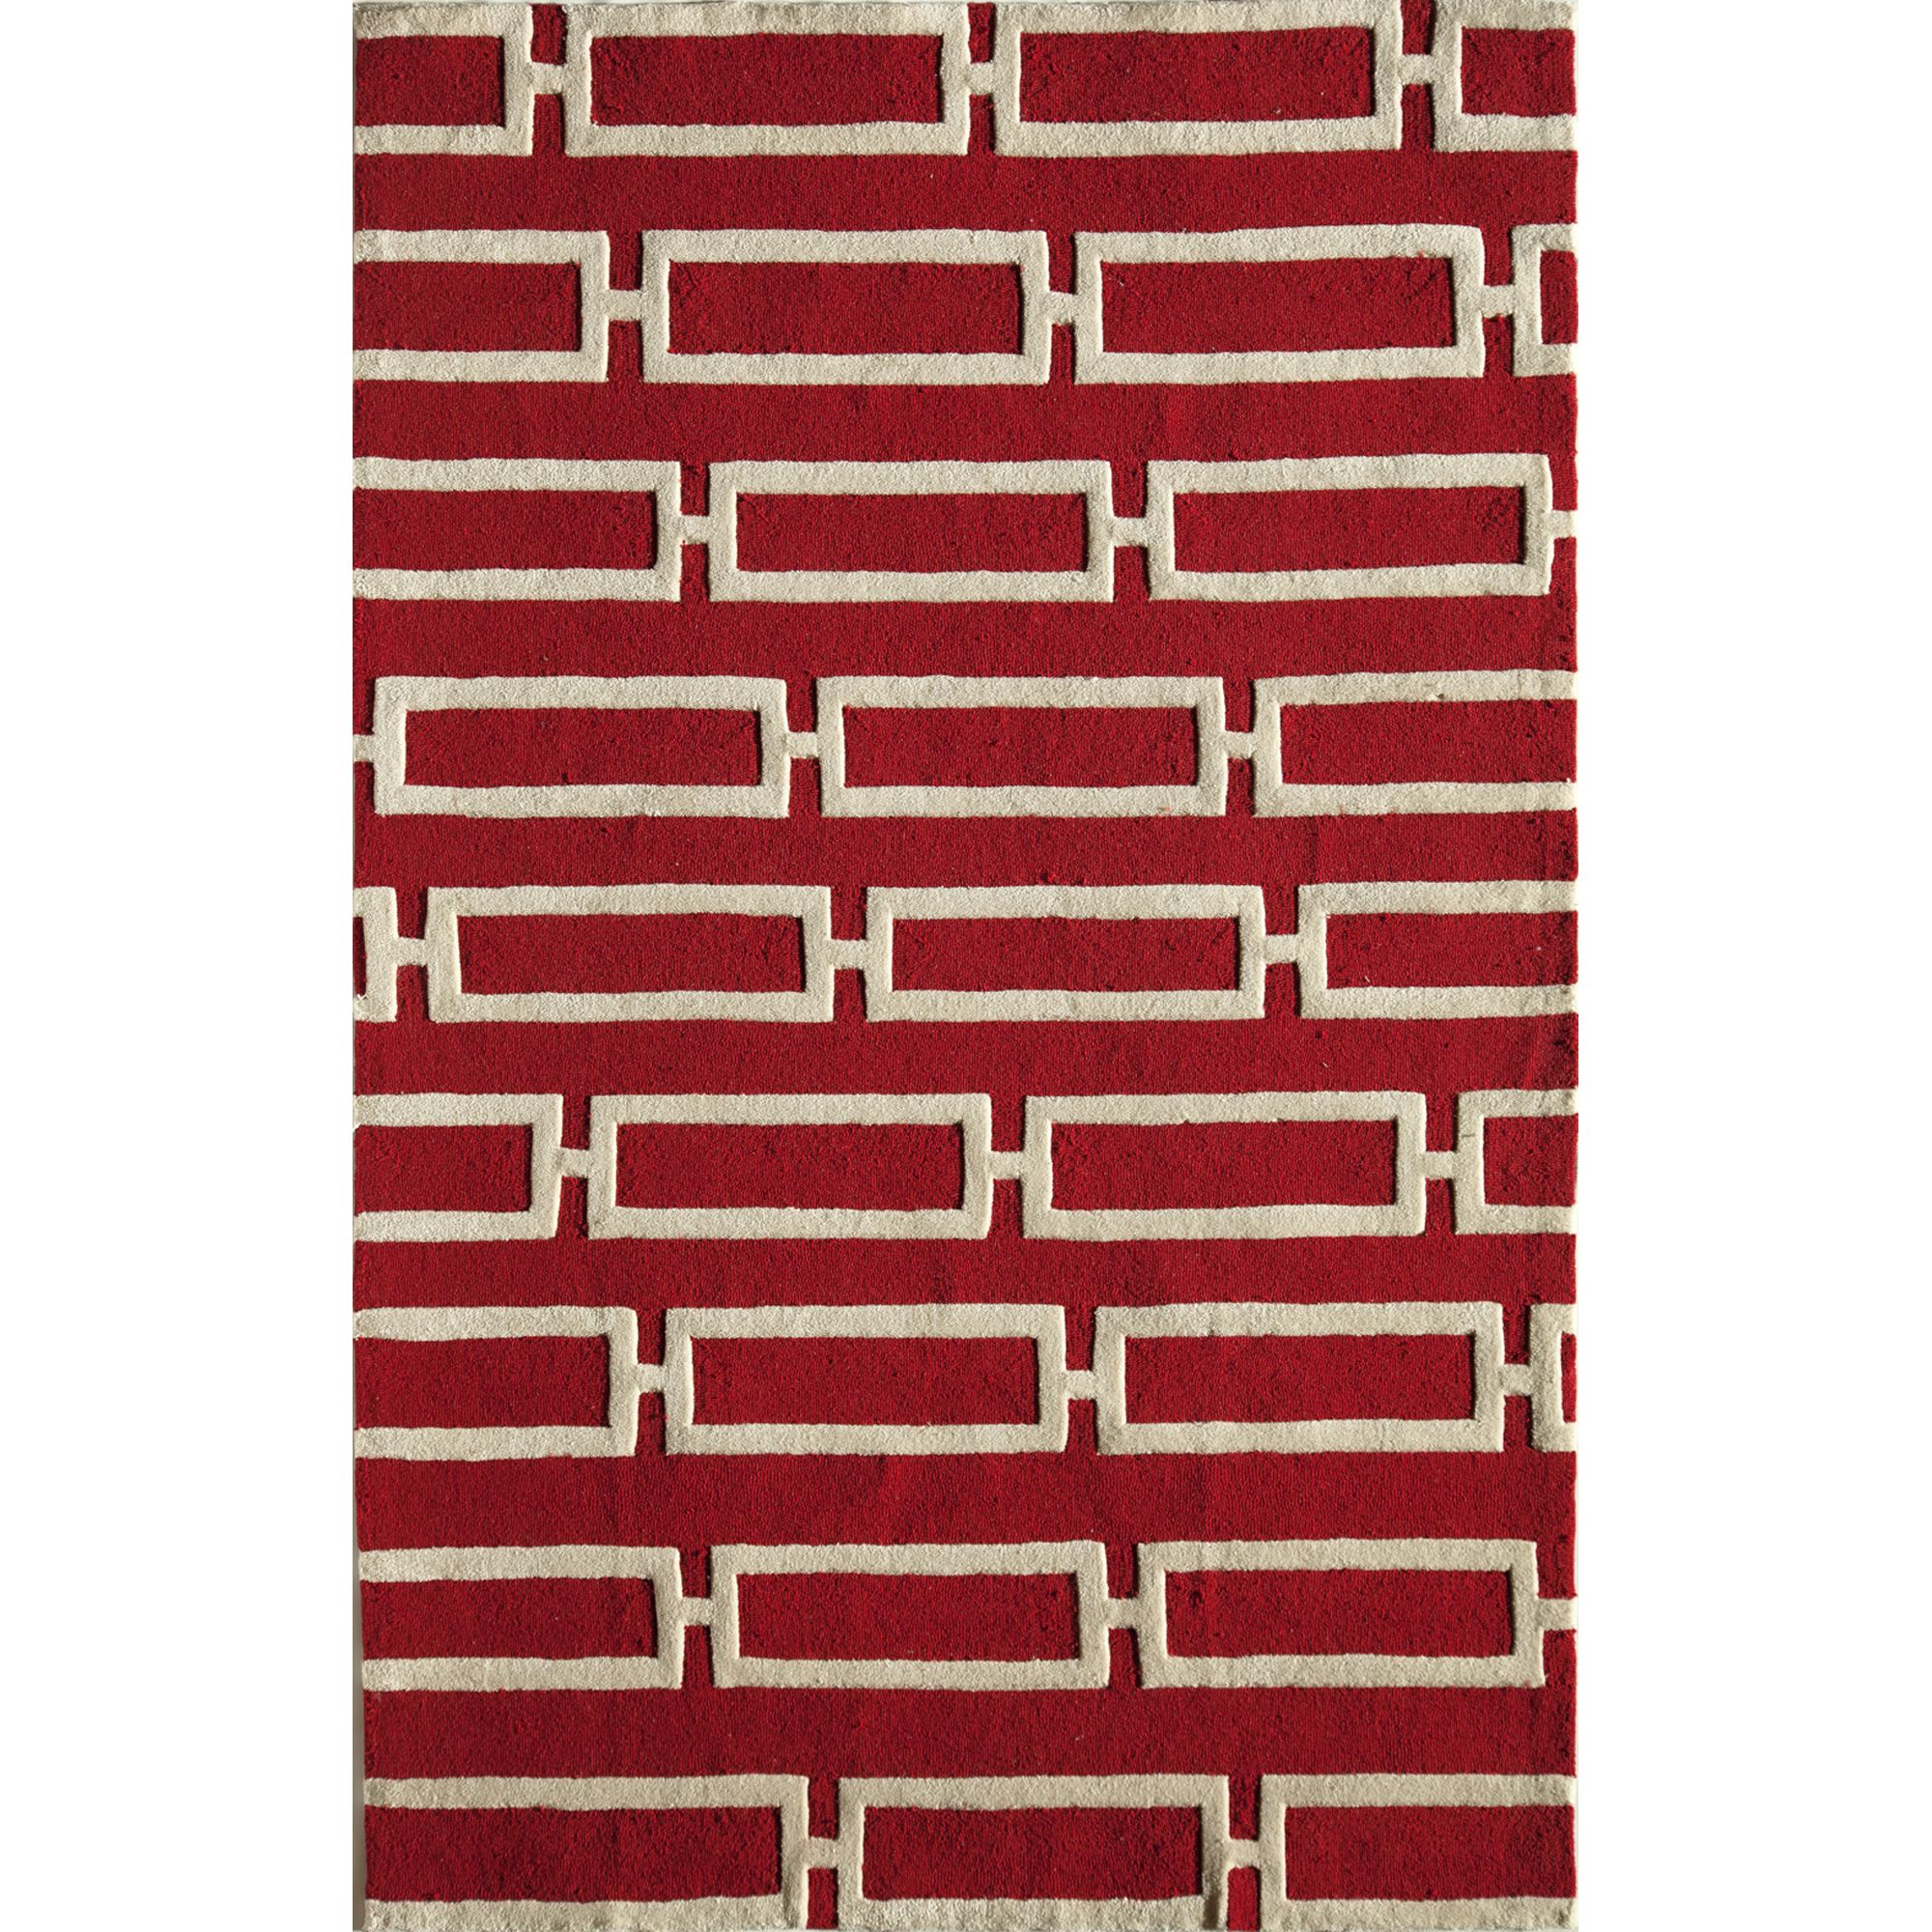 Woven Accents Amore Gold Geometric Area Rug (8' x 10') (